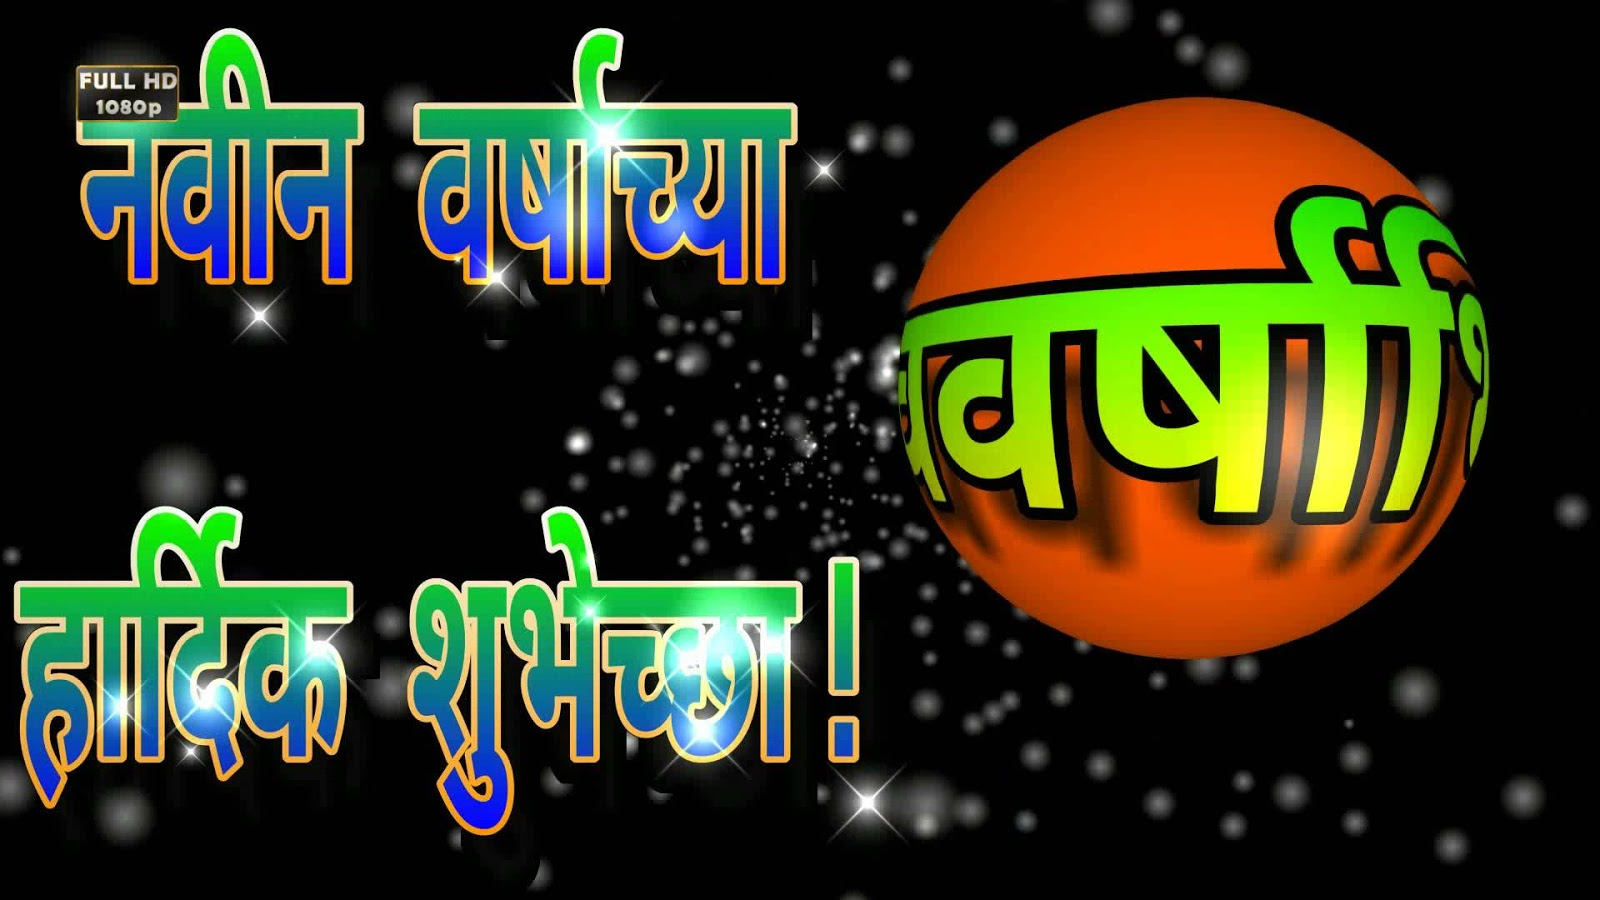 happy new year greetings in marathi